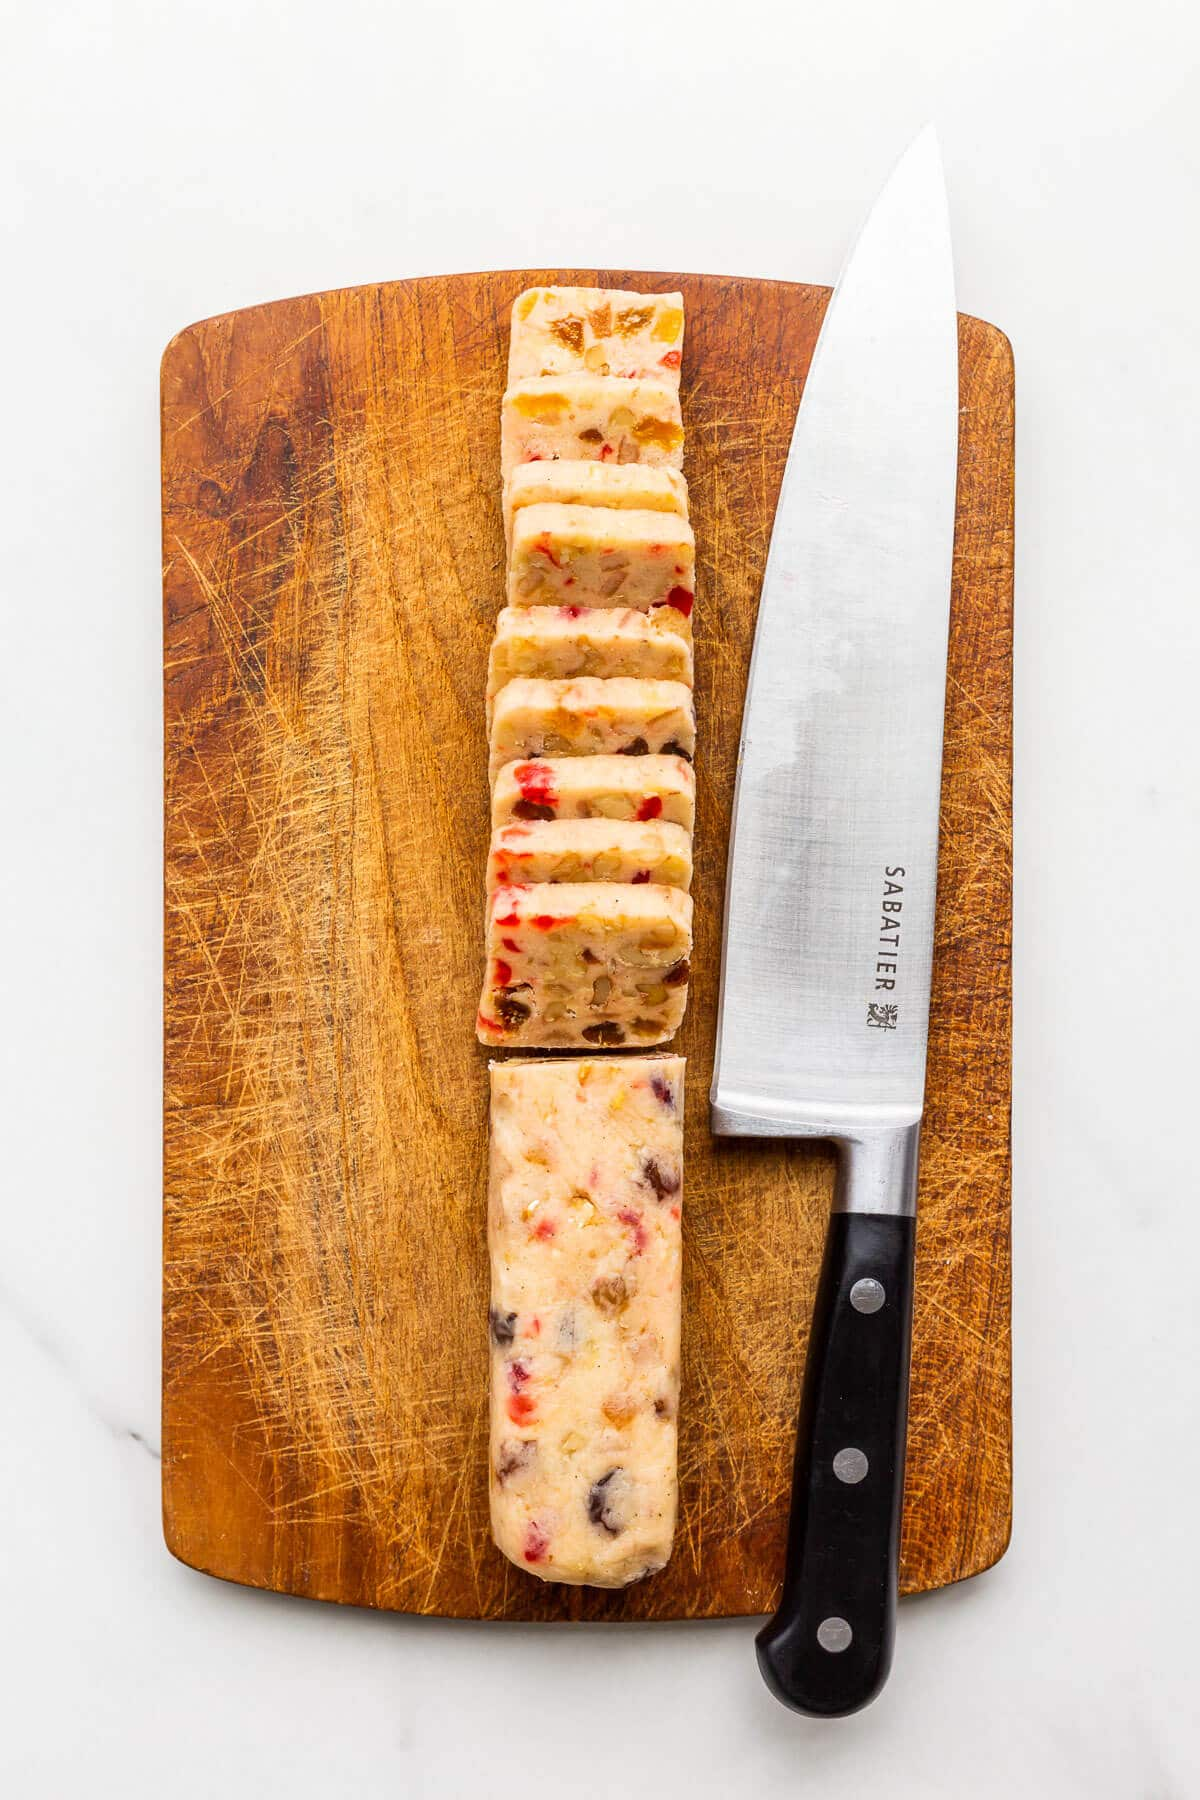 Slicing a log of fruitcake cookie dough on a wood cutting board.